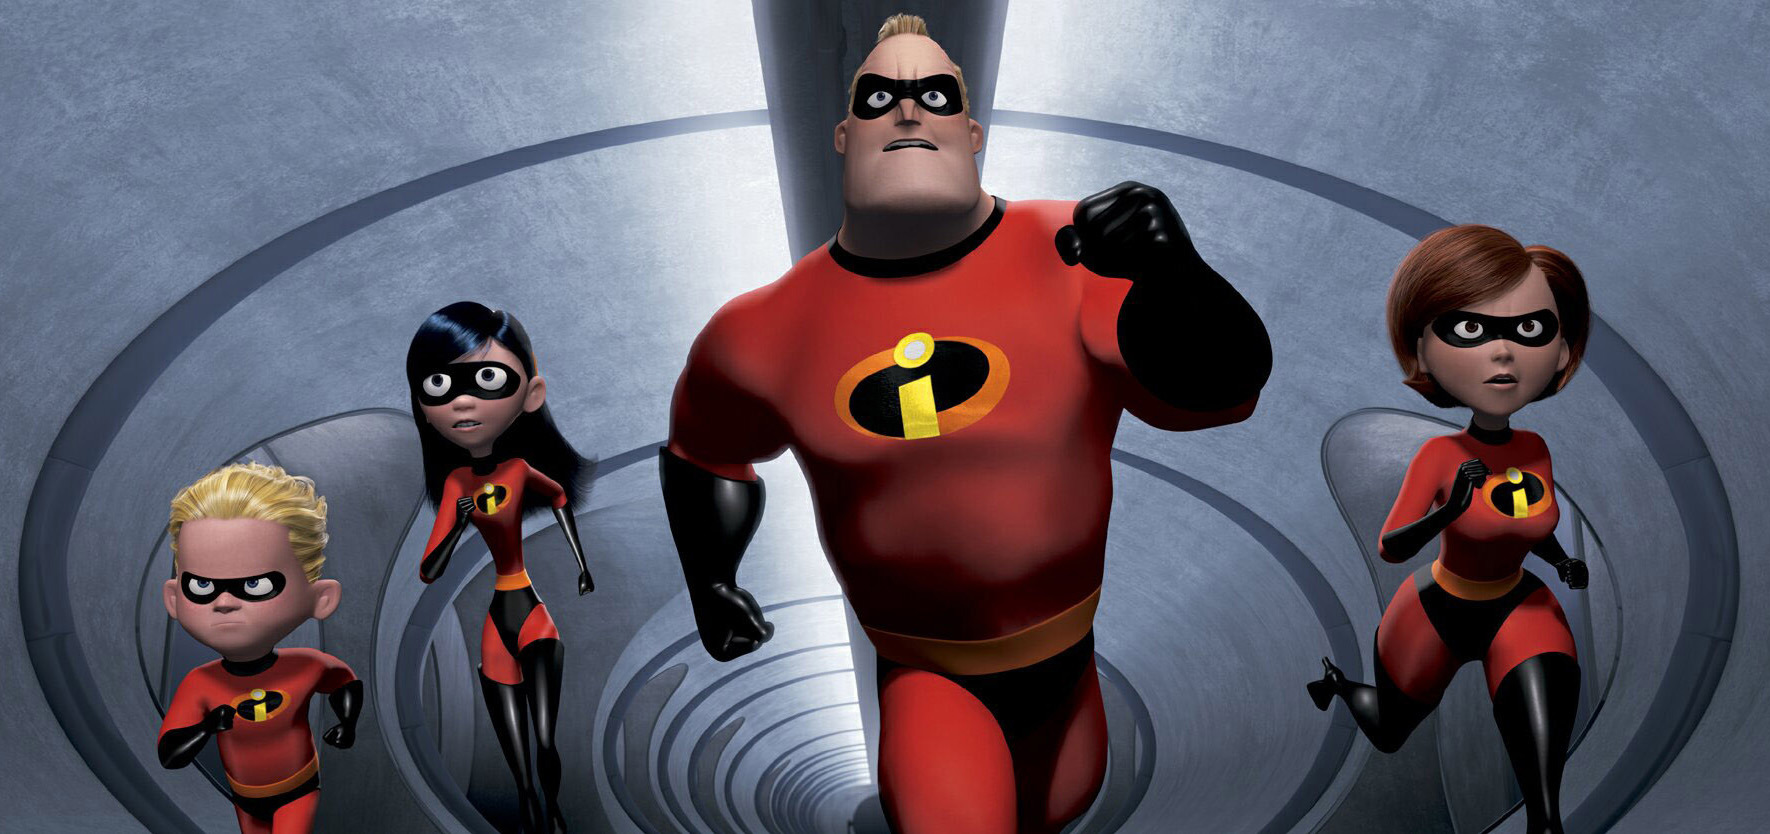 Incredibles release date in Perth